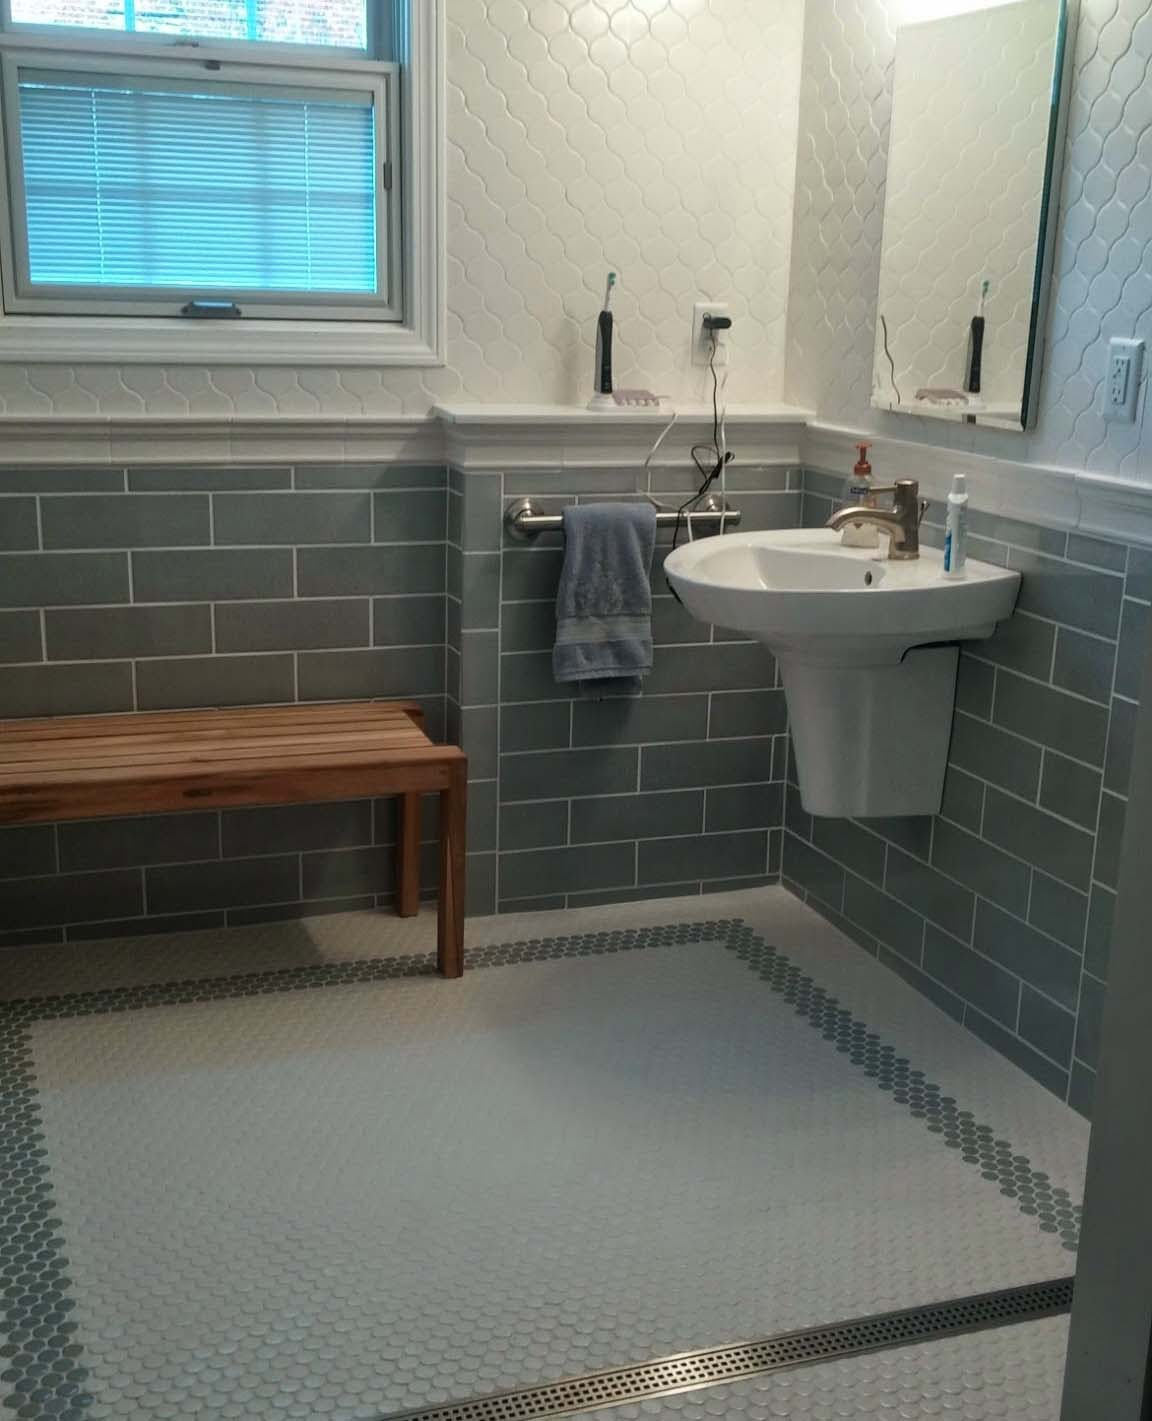 Schluter systems bathroom with Walker Zanger tile Slide show plus sink and wooden bench for bathroom decor ideas